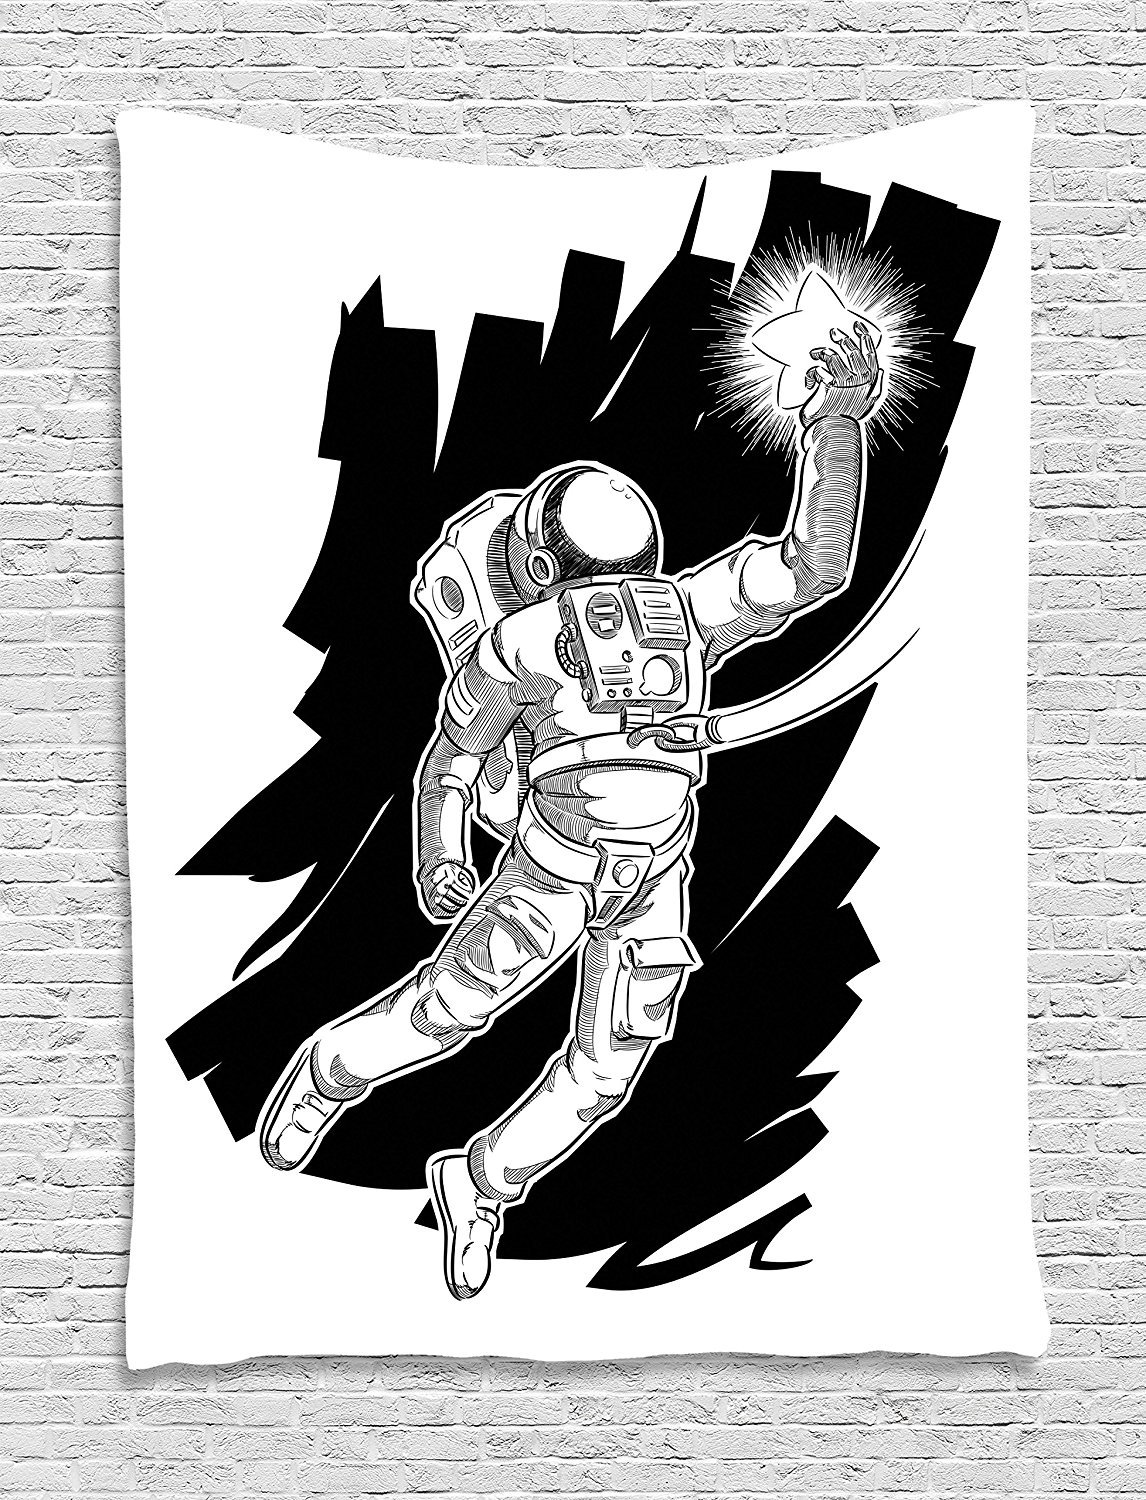 asddcdfdd Astronaut Tapestry, Sketch of Spaceman Grabbing a Star Achivement Discovery Zero Gravity Technology, Wall Hanging for Bedroom Living Room Dorm, 60 W X 80 L Inches, Black White